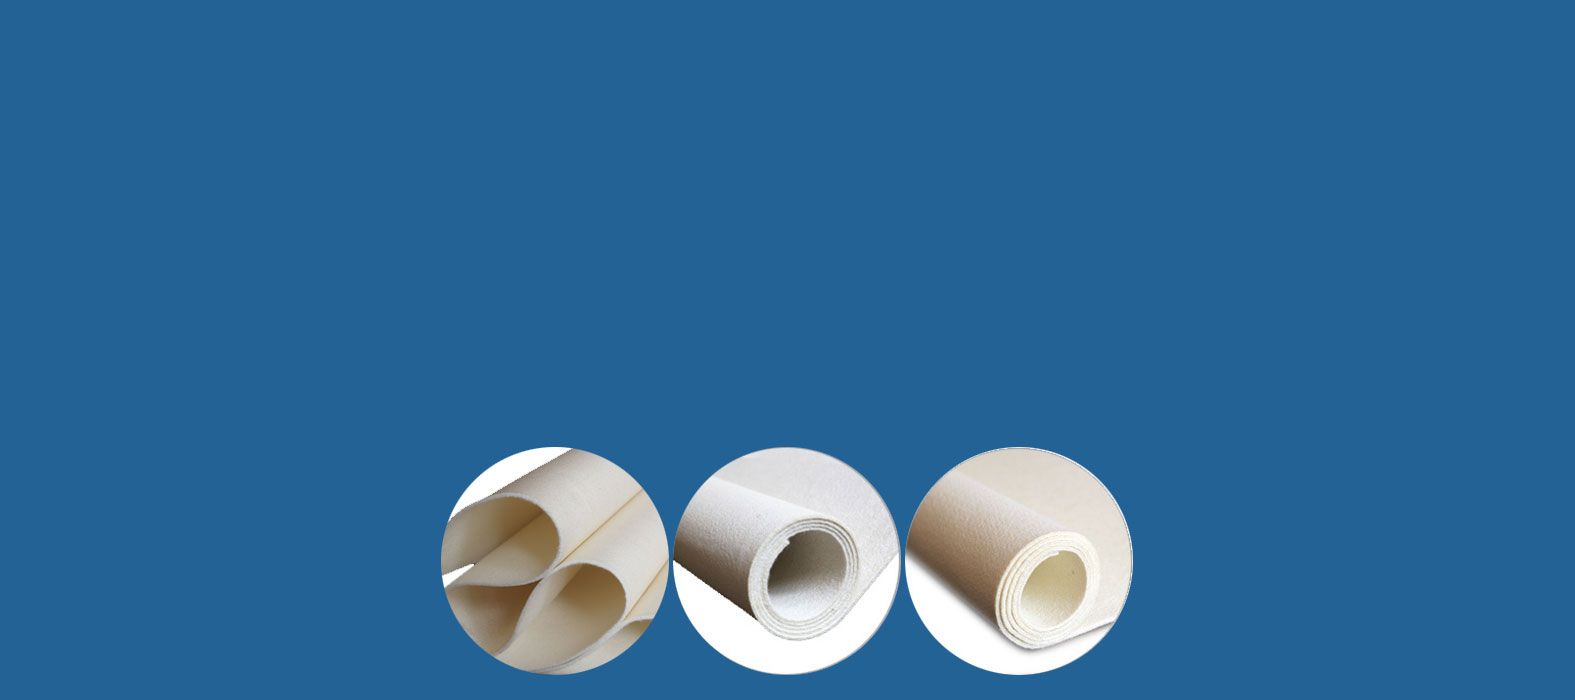 filter fabric, dust filter cloth, air filter fabric, nonwoven filter material, filter felt, needle punched felt, needle punched nonwoven